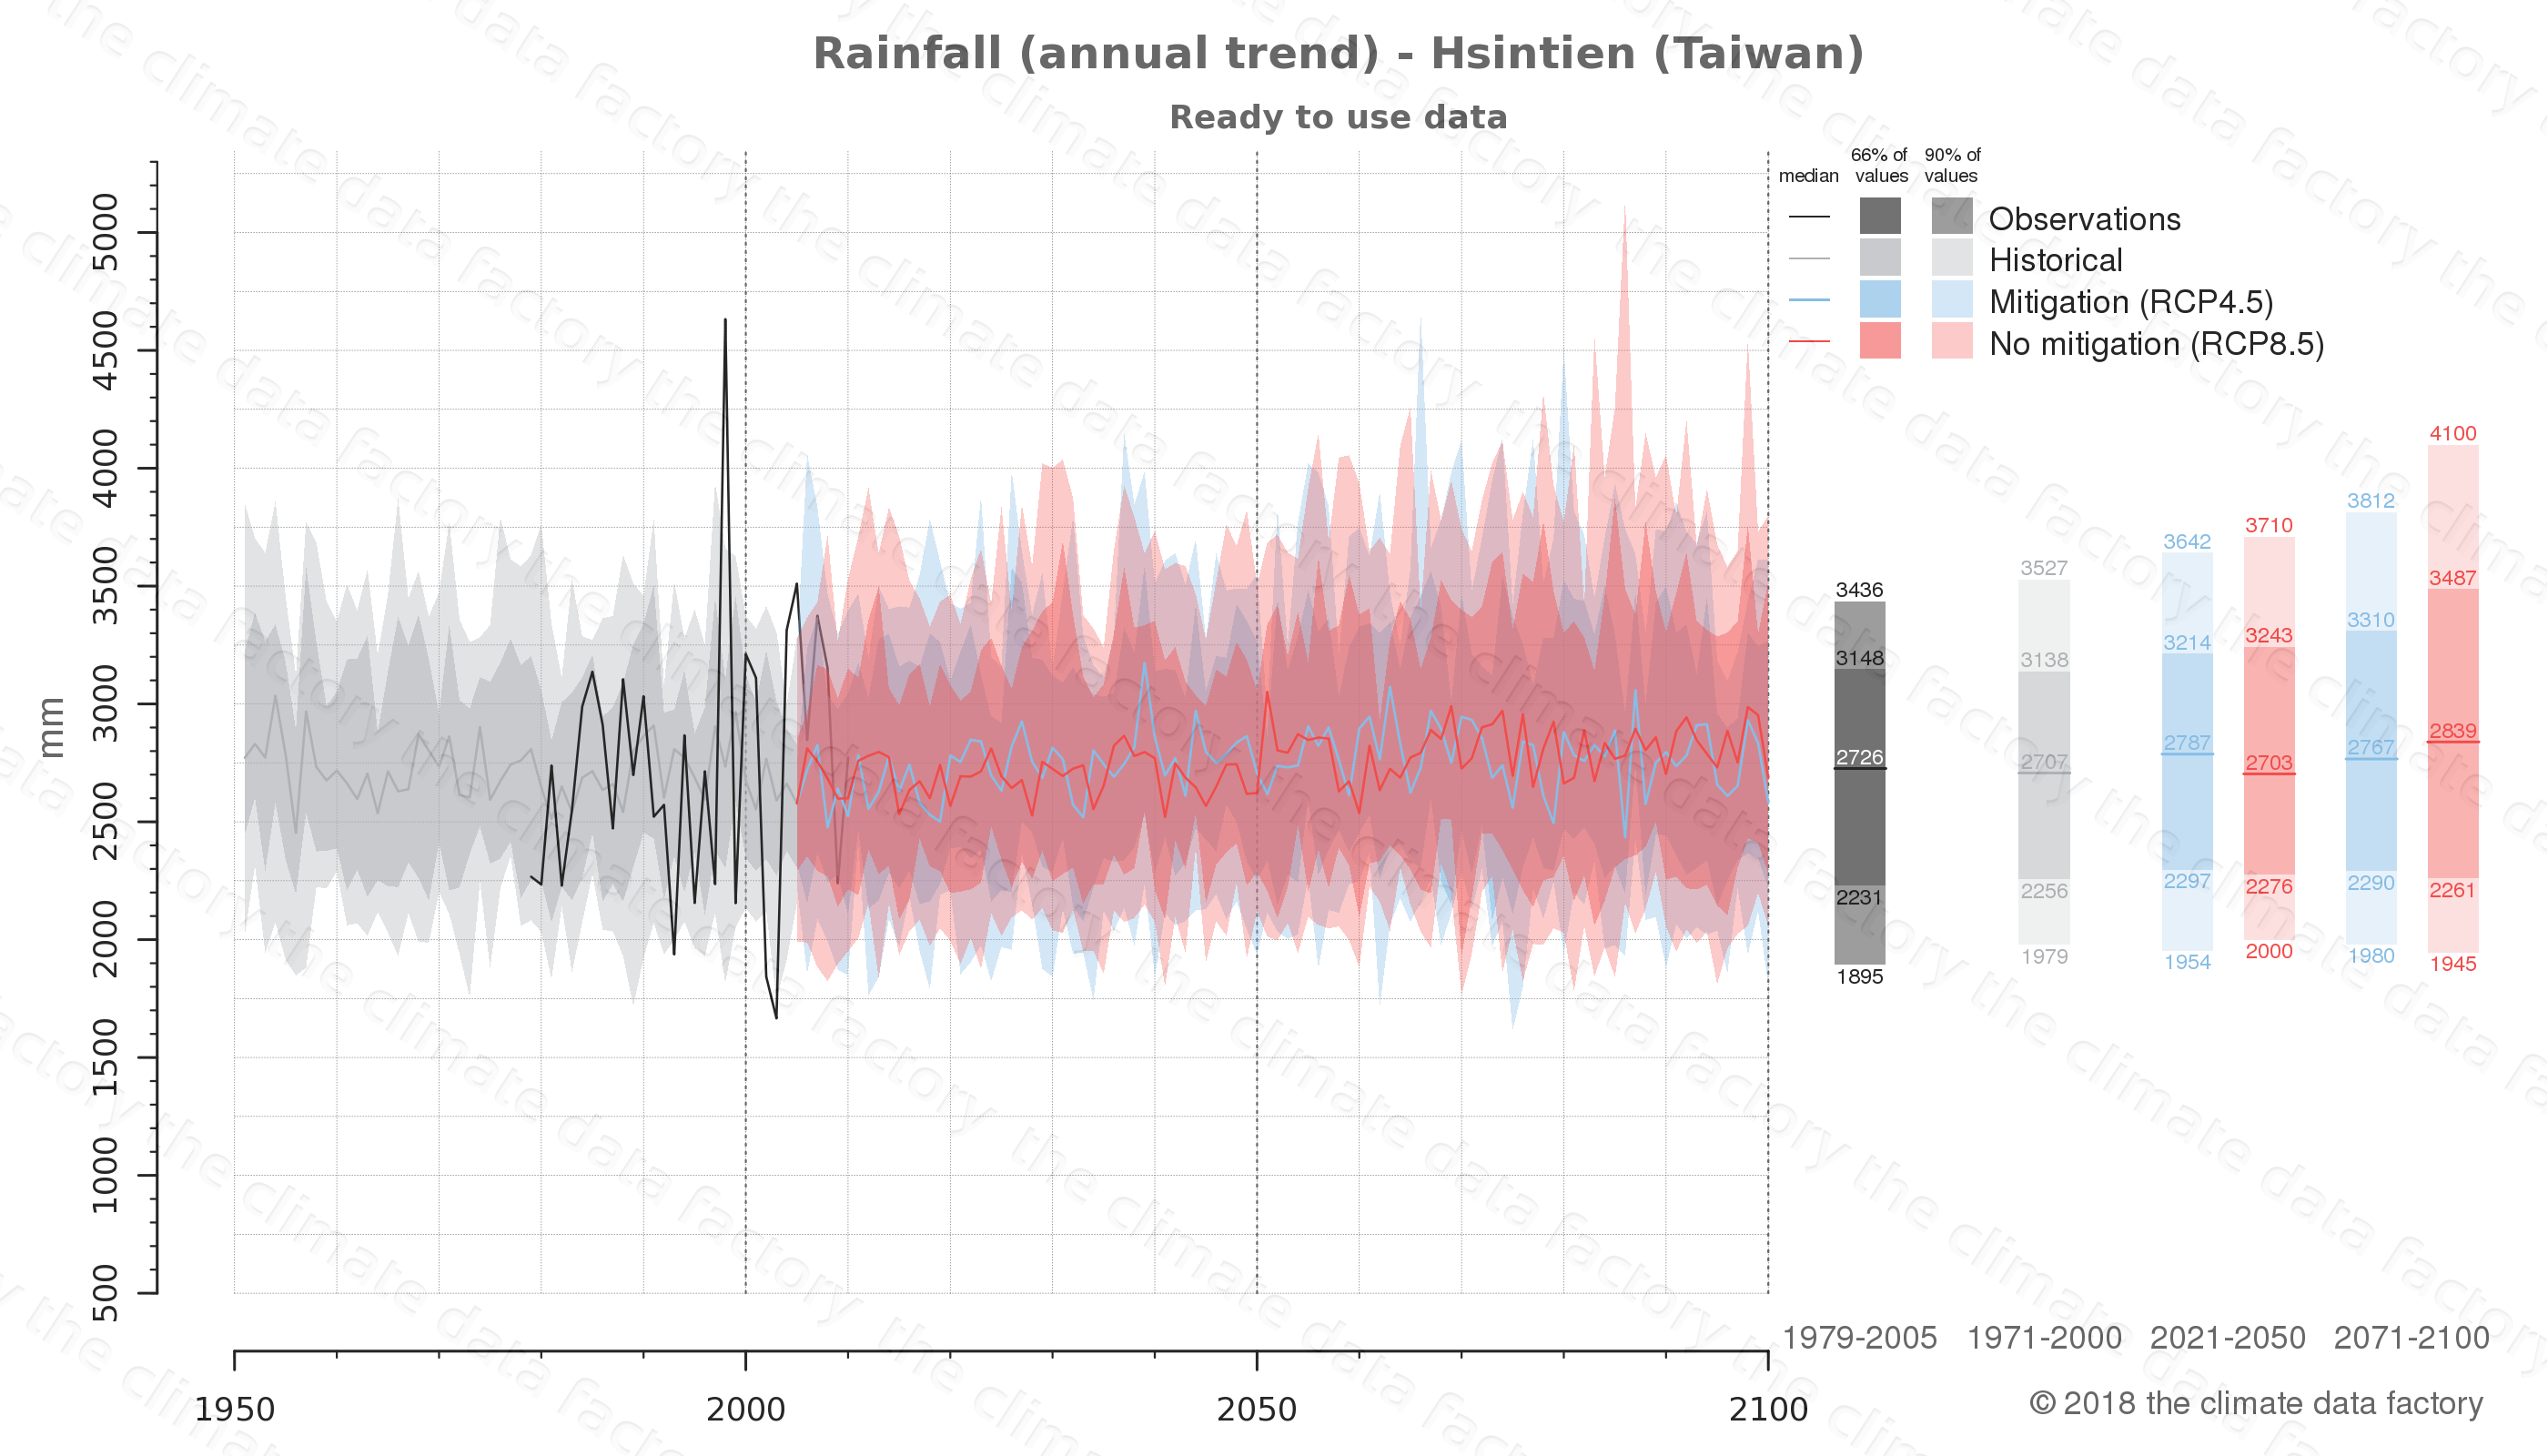 climate change data policy adaptation climate graph city data rainfall hsintien taiwan